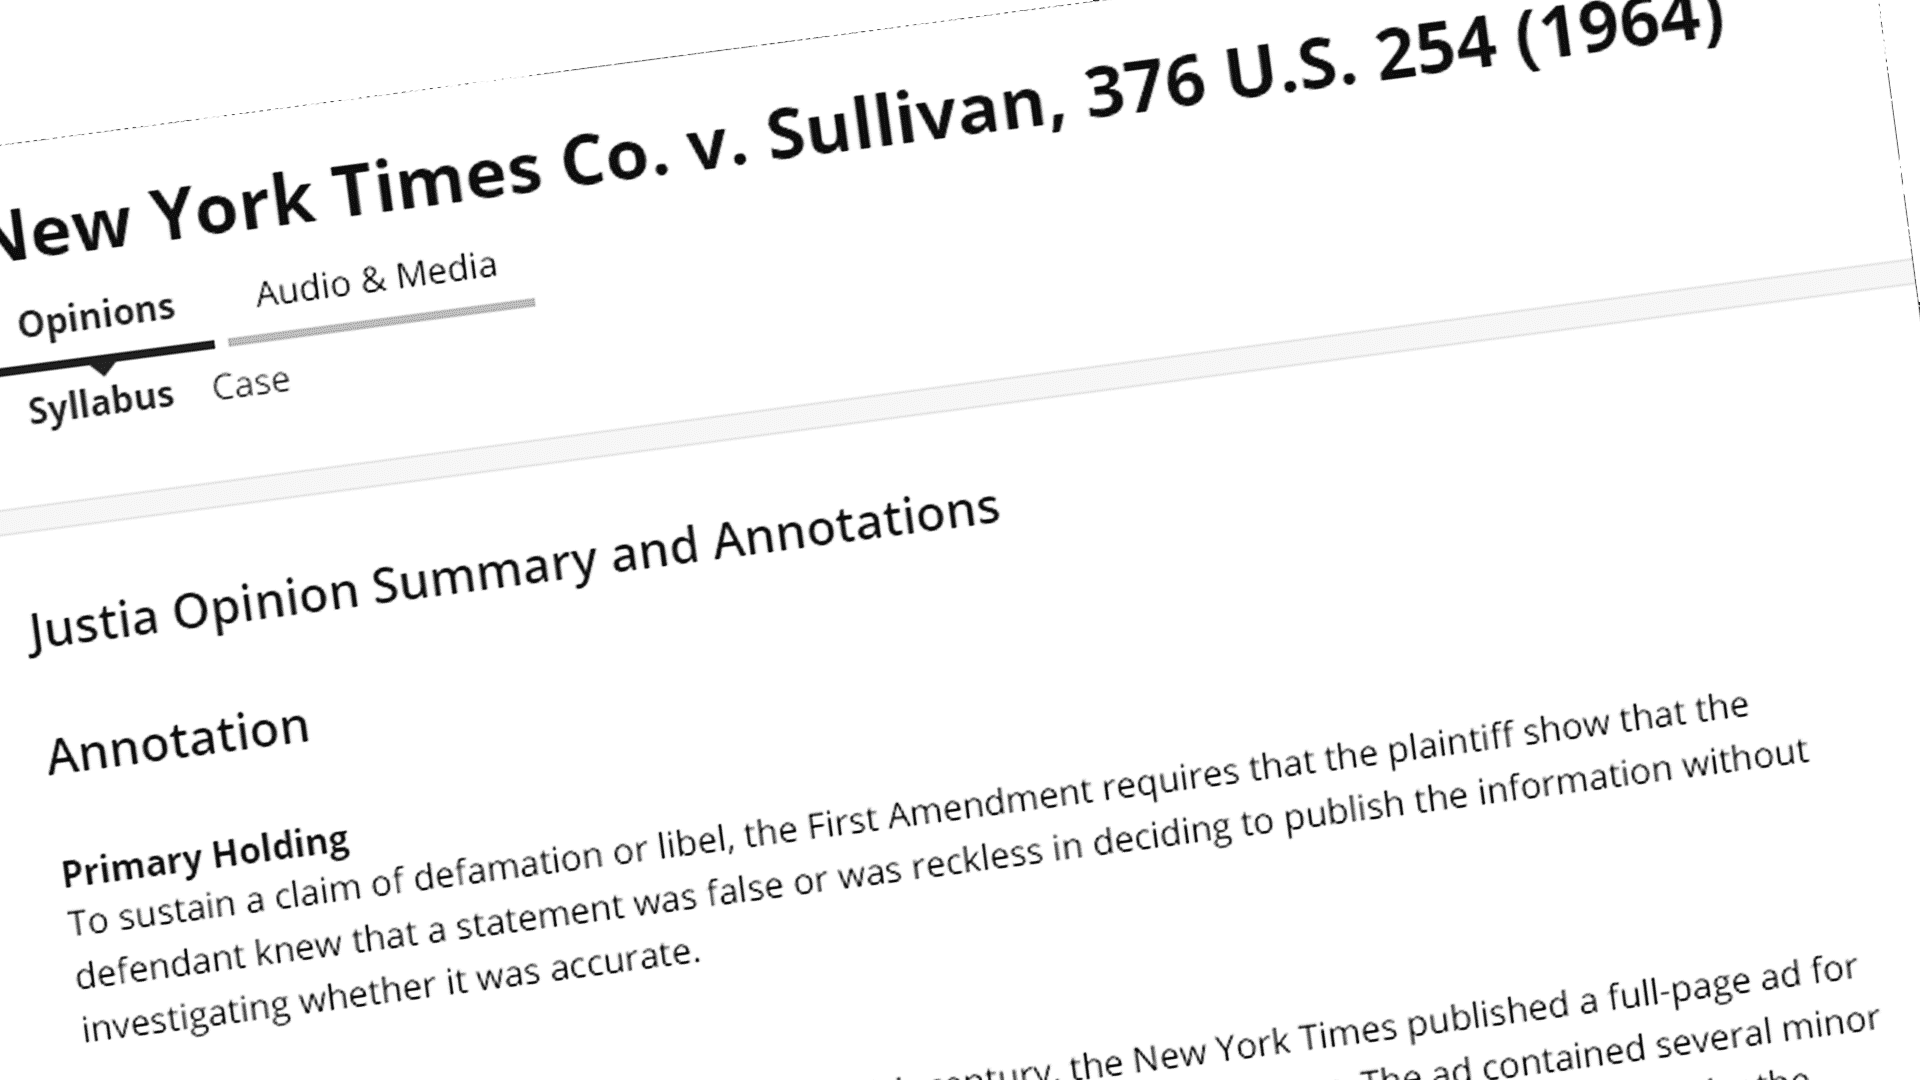 New York Times v. Sullivan.